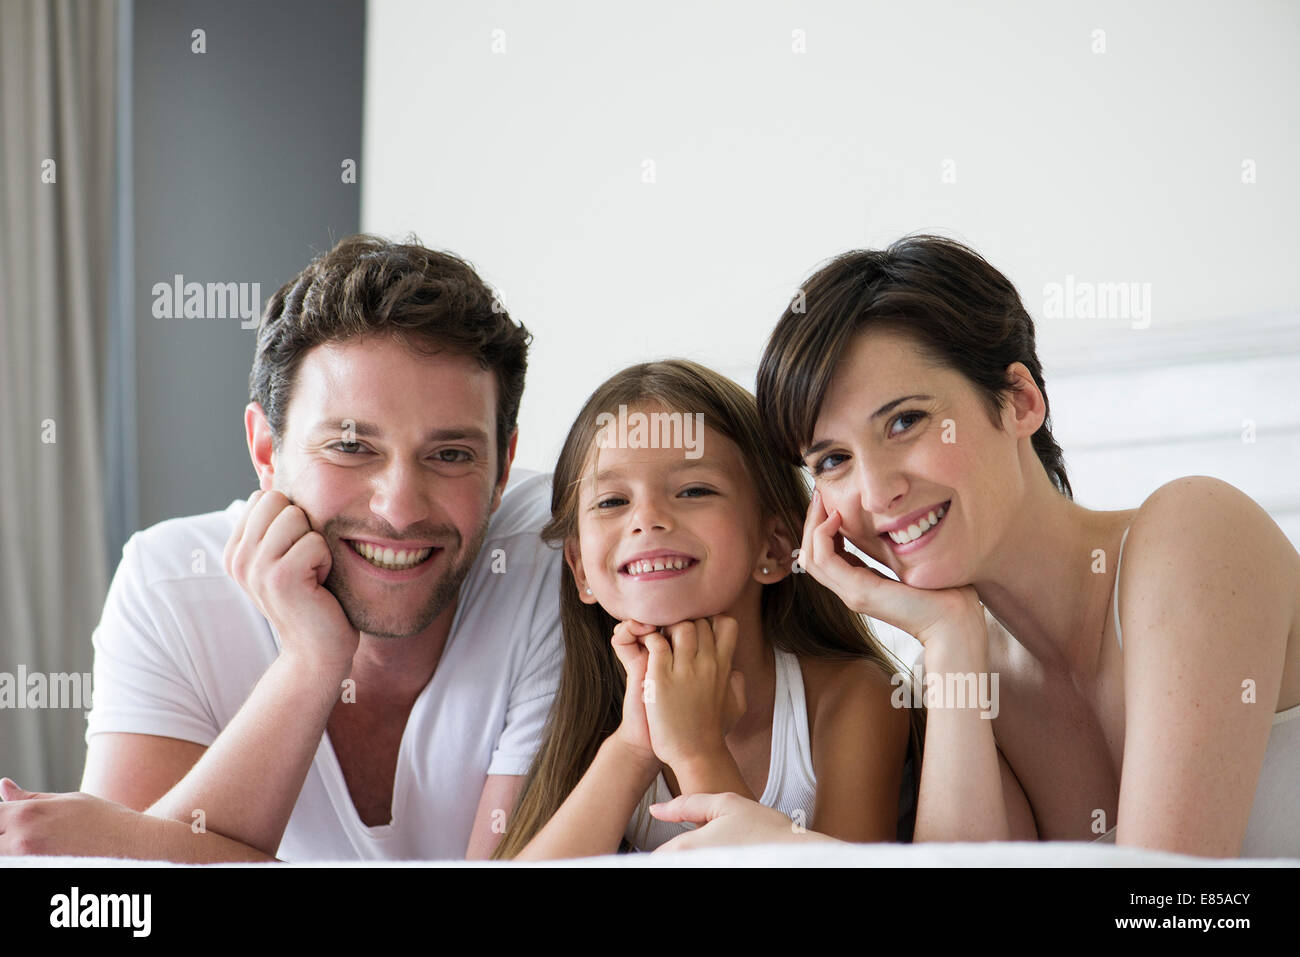 Parents and daughter lying on bed together, portrait - Stock Image